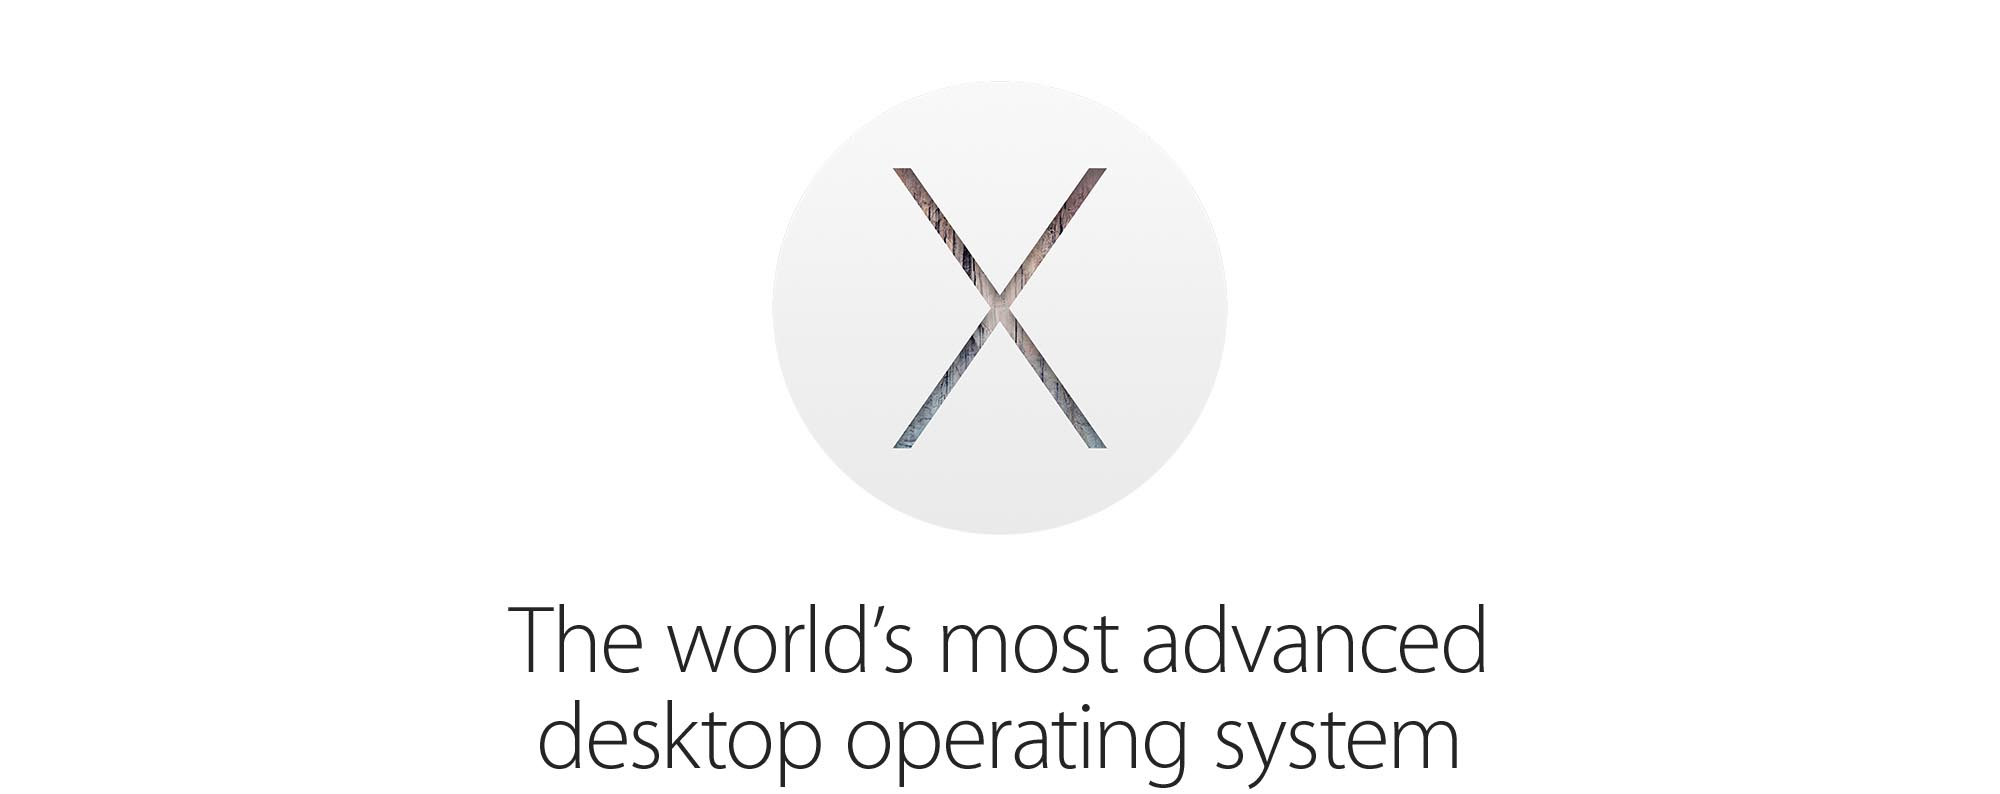 The world's most advanced desktop operating system